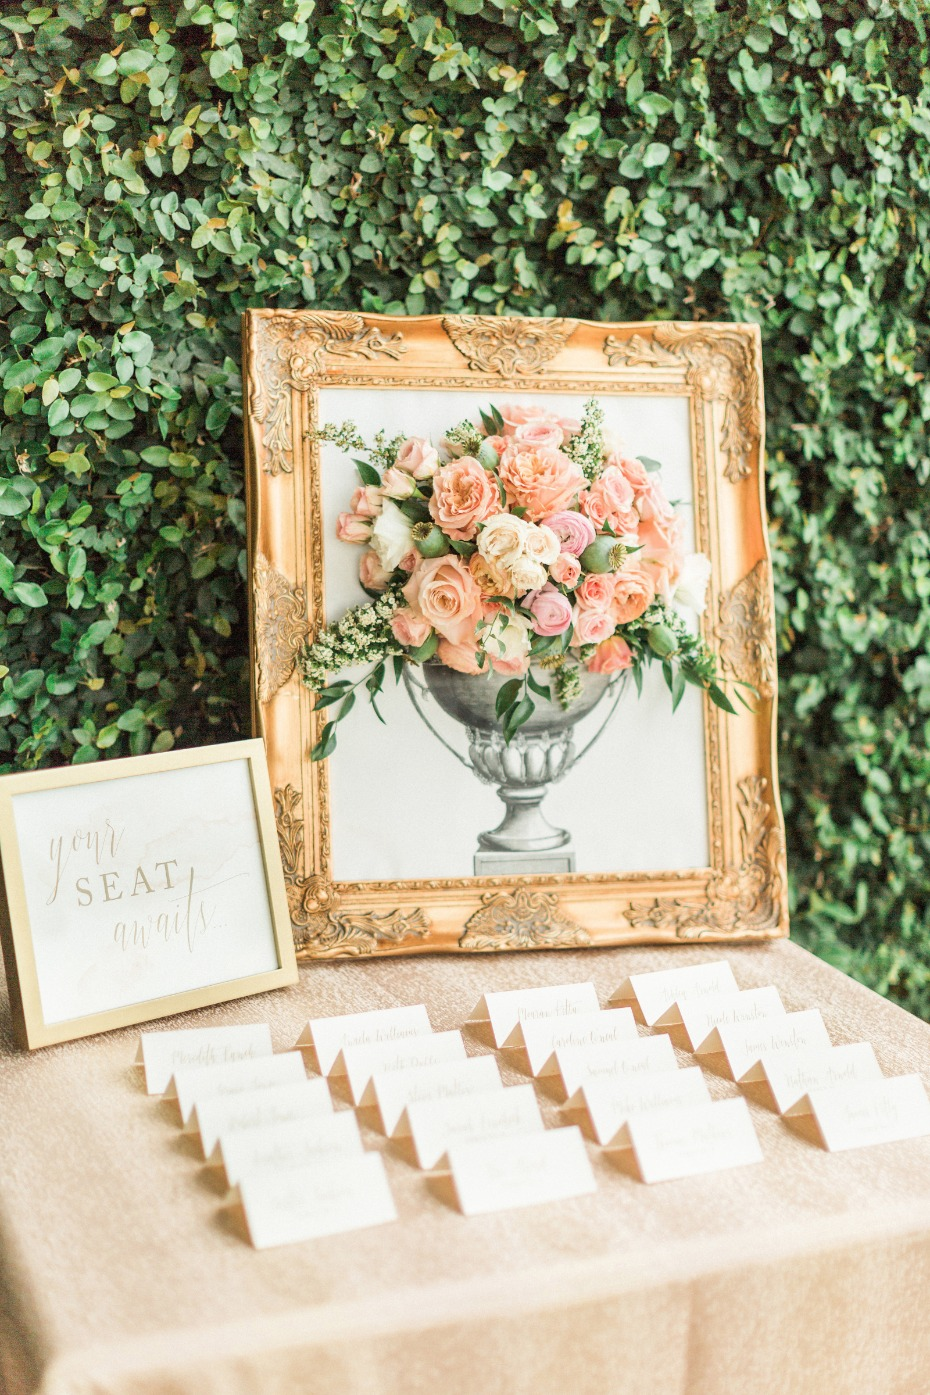 live floral wedding portrait for your escort card table